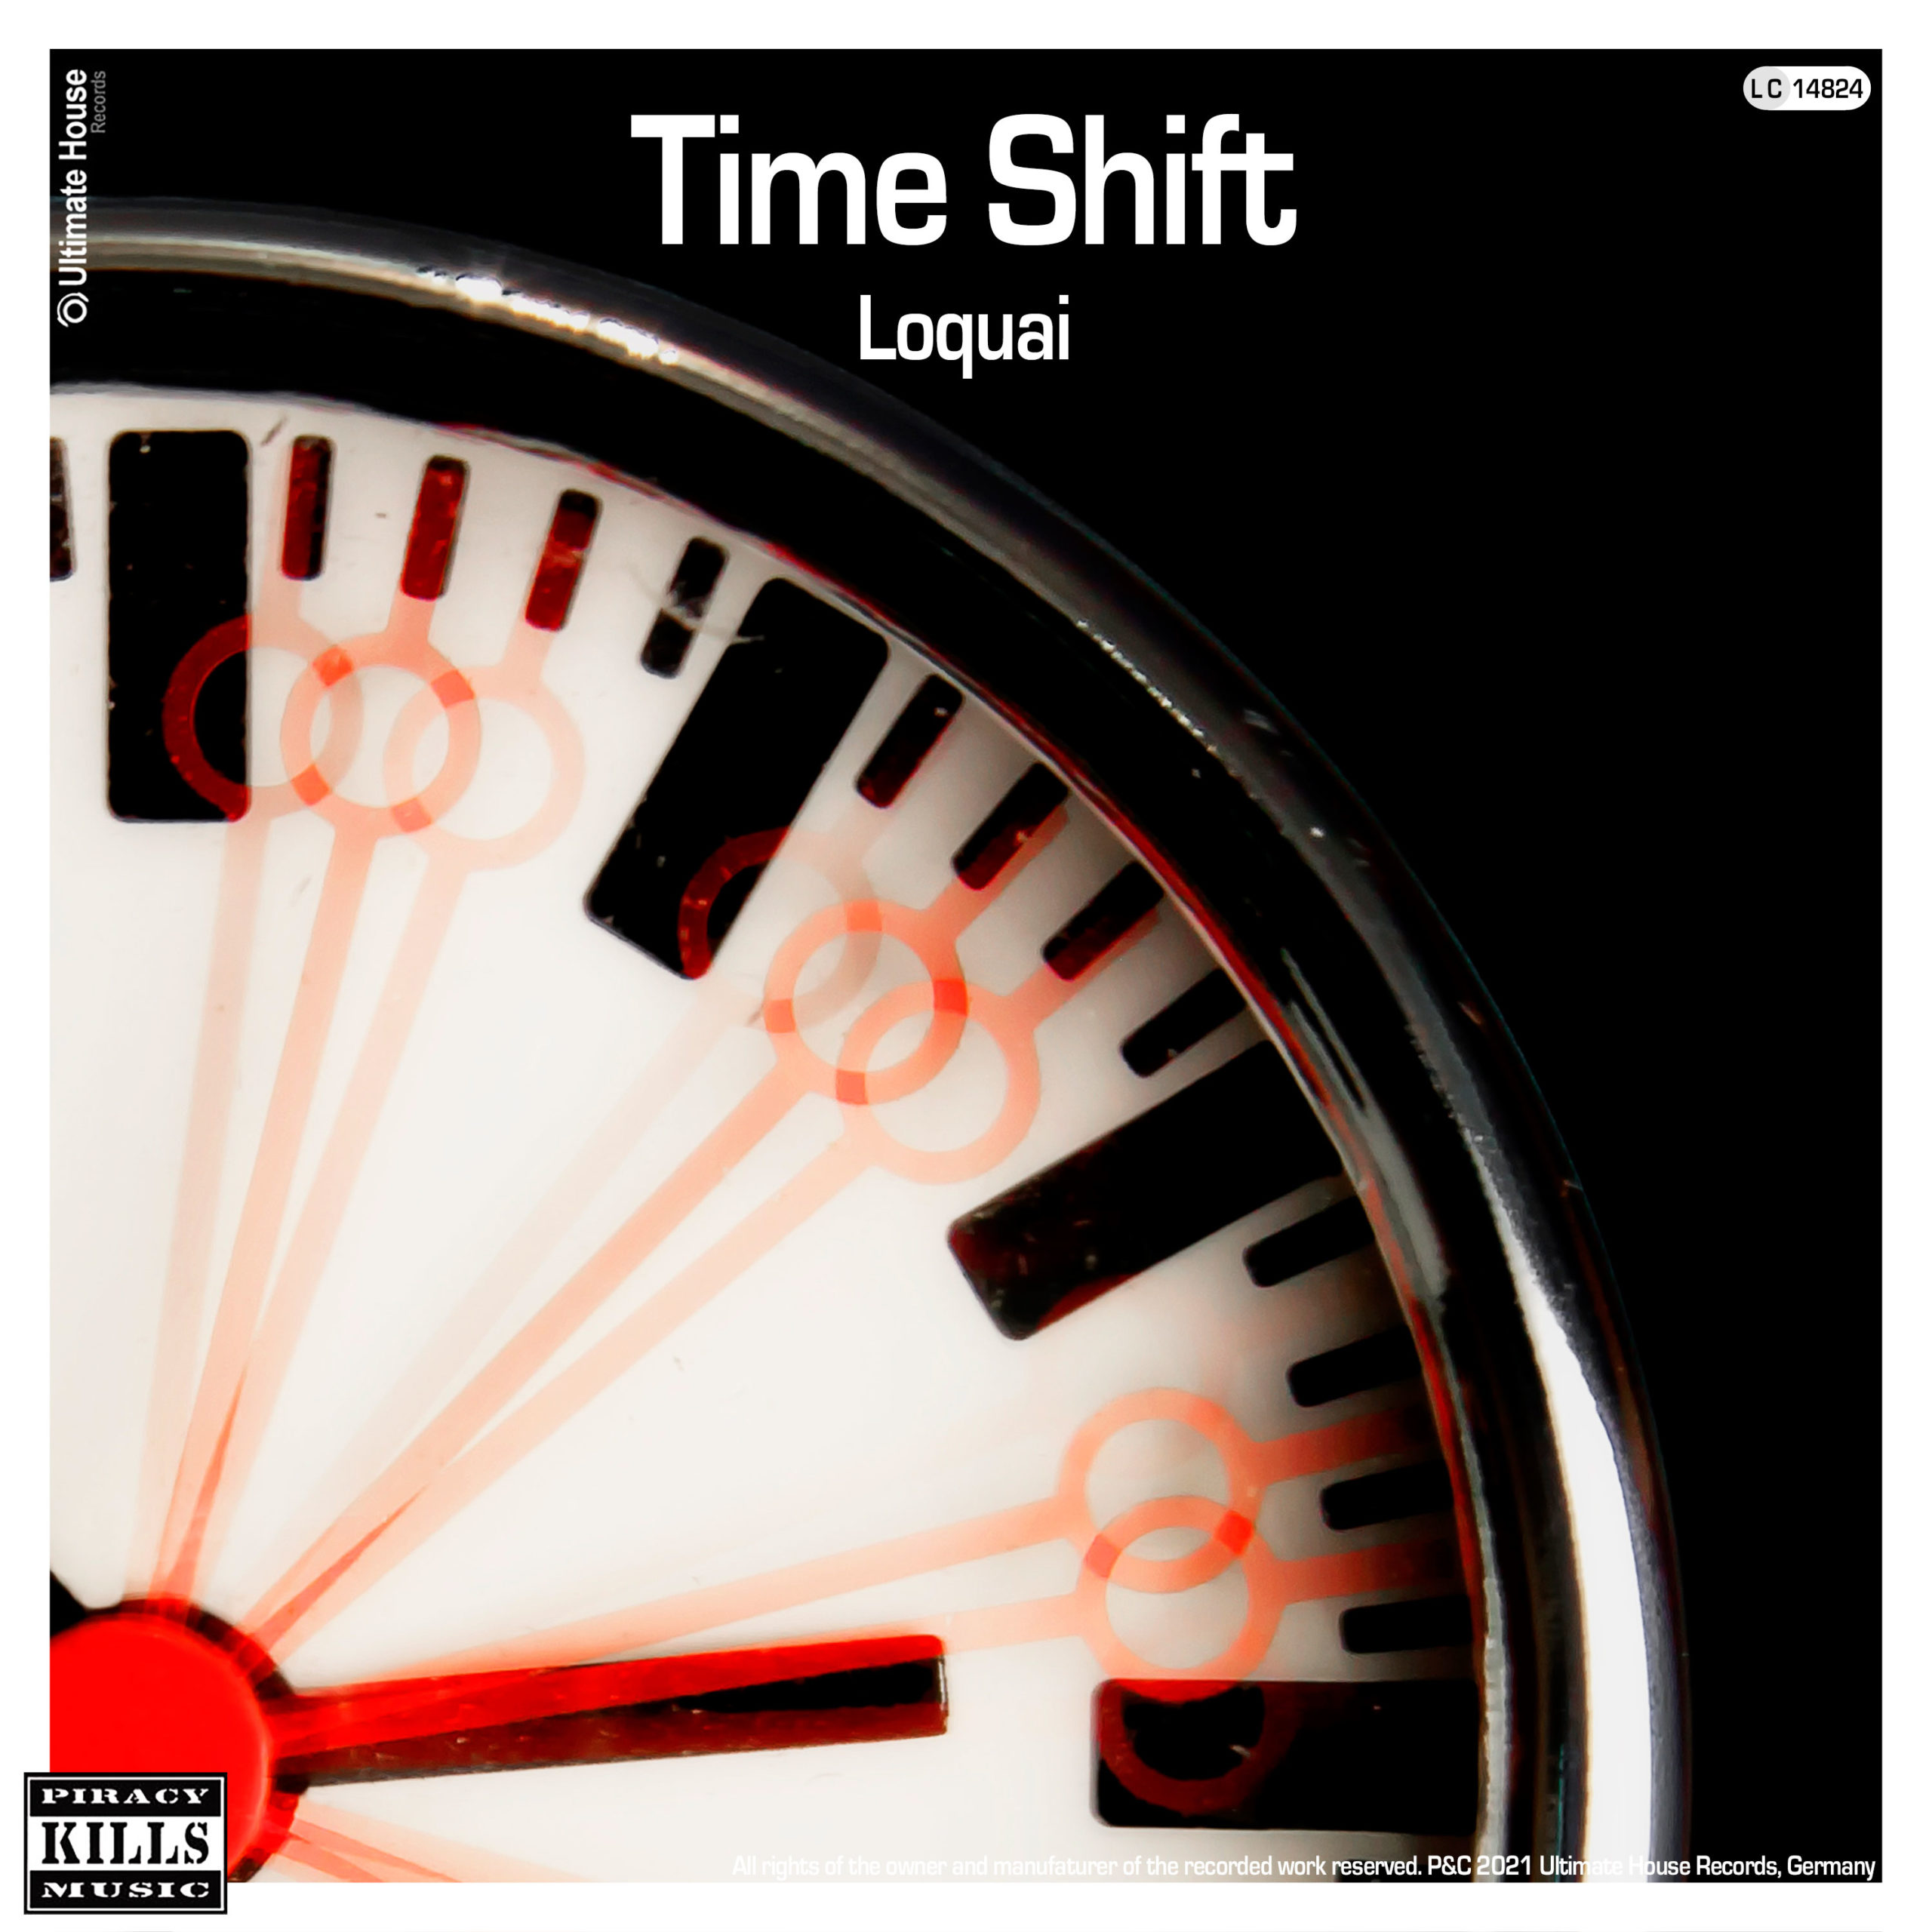 https://www.ultimate-house-records.com/wp-content/uploads/2021/07/149-Time_Shift-Cover_3000px_web-scaled.jpg